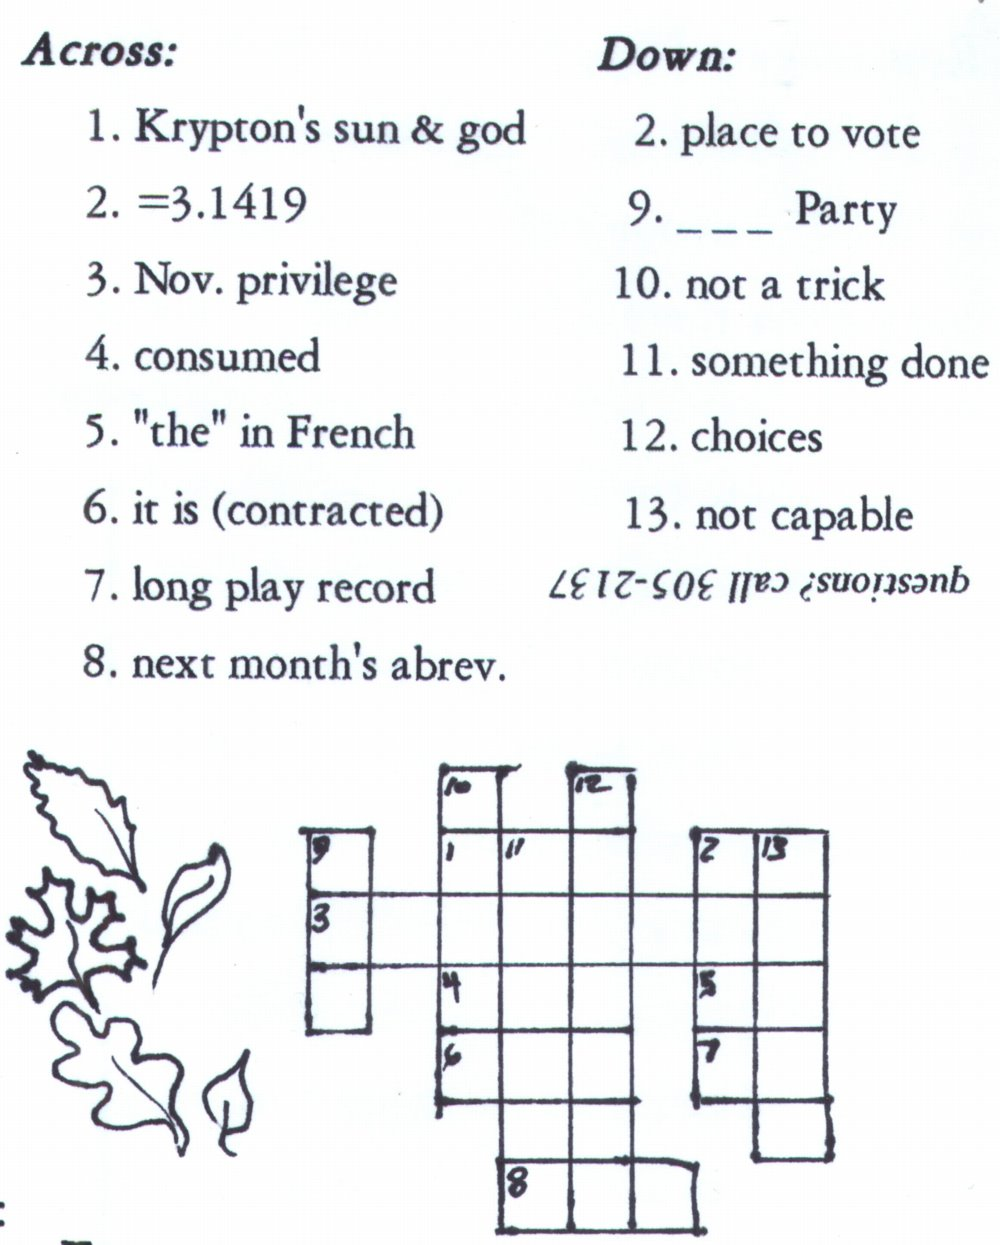 CrossWord Puzzle  sc 1 st  KyLinks.net Links to Kentucky websites & Crofton Chronicle 25forcollege.com